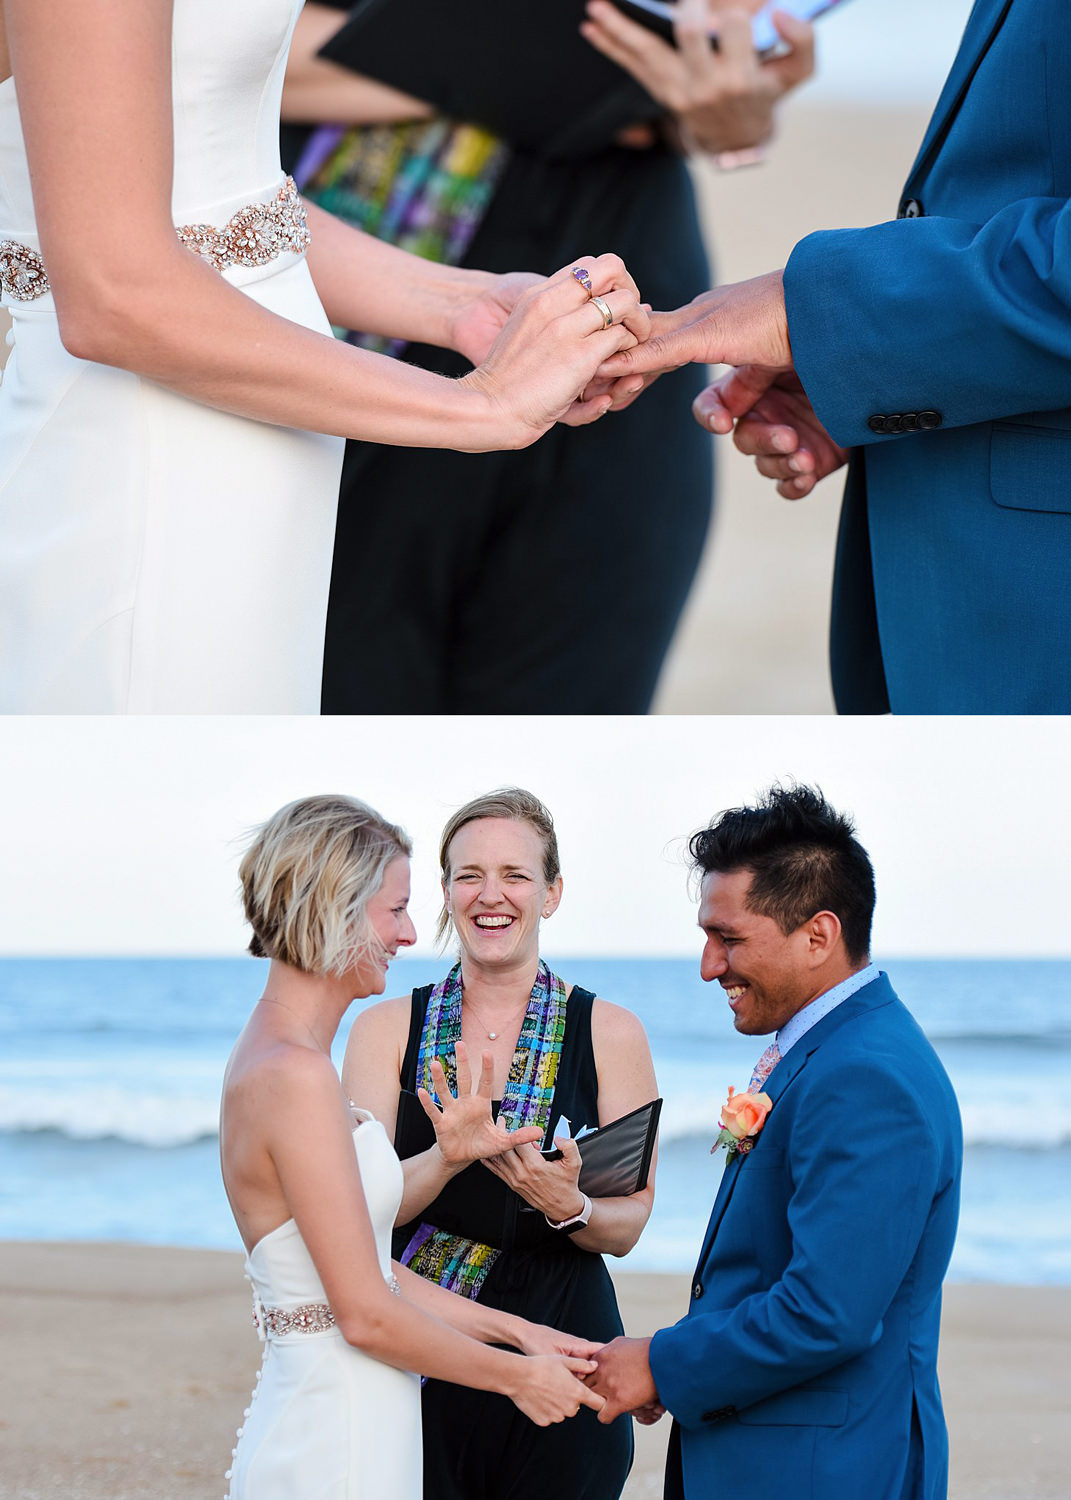 intimate-beach-wedding-sandbridge-ceremony-pictures-melissa-bliss-photography-VA.jpg